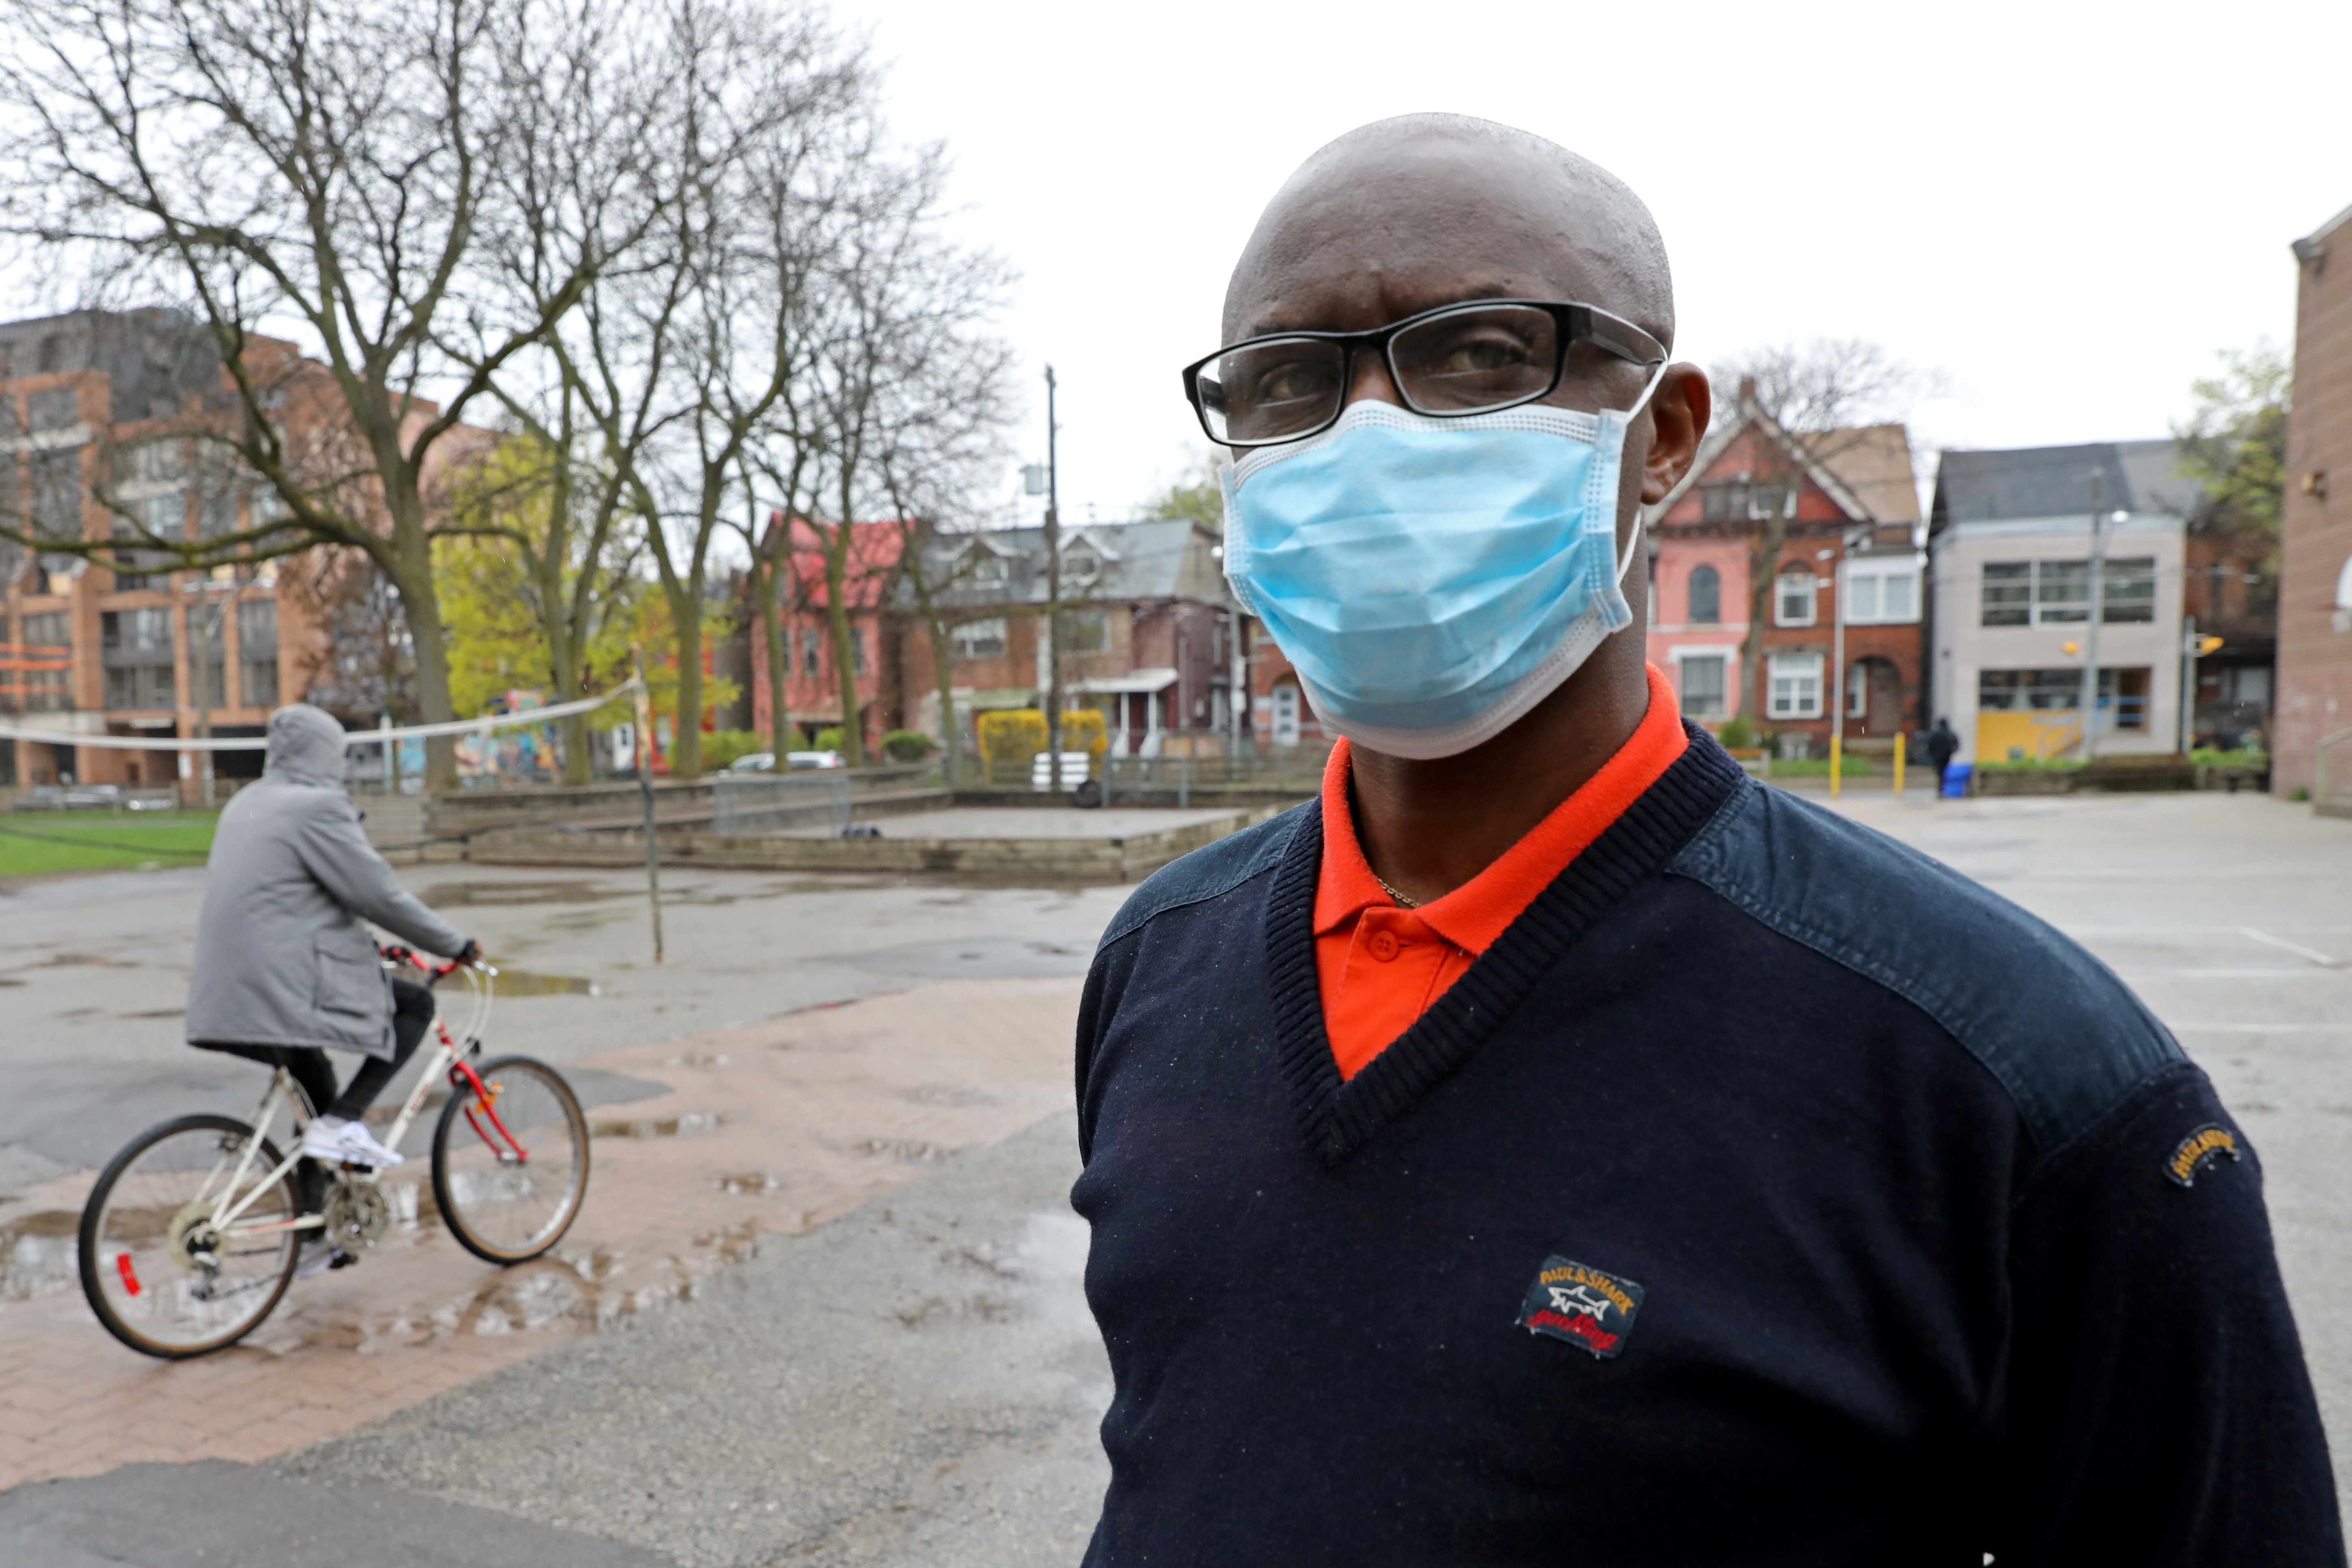 Apollinaire Nduwimana, a Burundian teacher and asylum-seeker who is awaiting a refugee application, poses outside a school near his lodging in Toronto, Ontario, Canada April 29, 2021. REUTERS/Chris Helgren